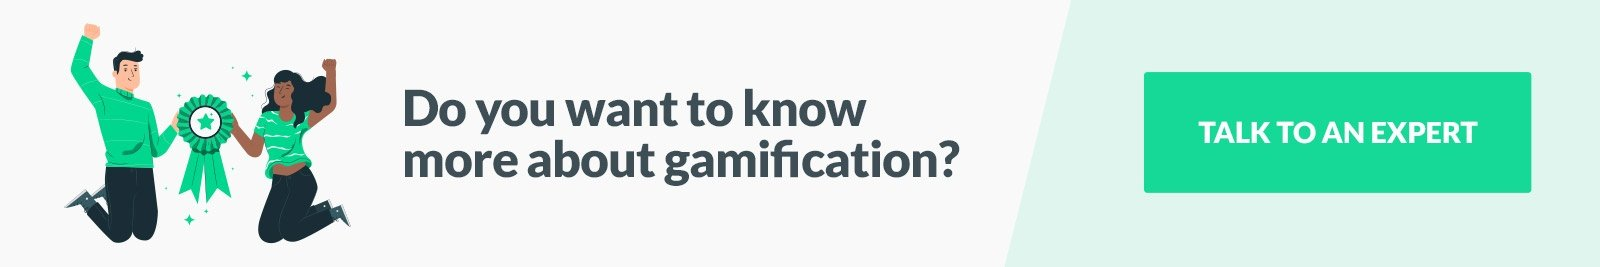 gamification - corporate training - corporate application - learning - Atrivity - trends - 2021